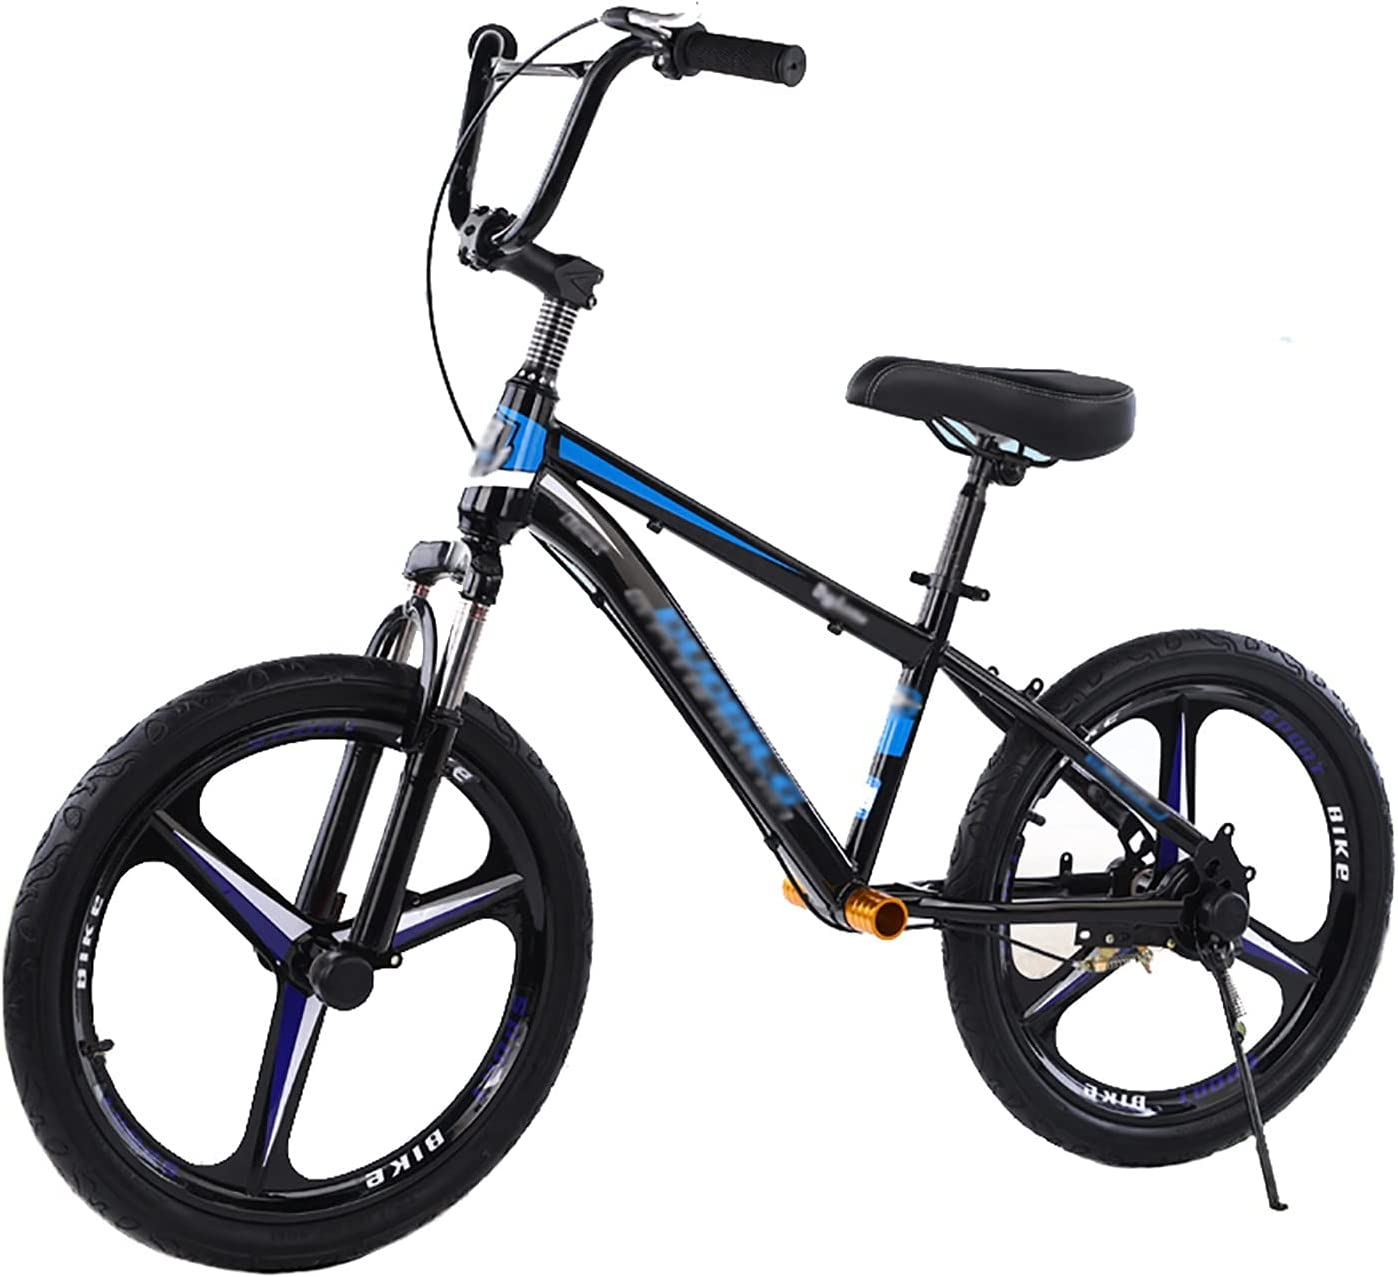 HYDT Cheap Be super welcome Large No-Pedal Balance Bike 18 20 Boys Inch Big Kids Ch for